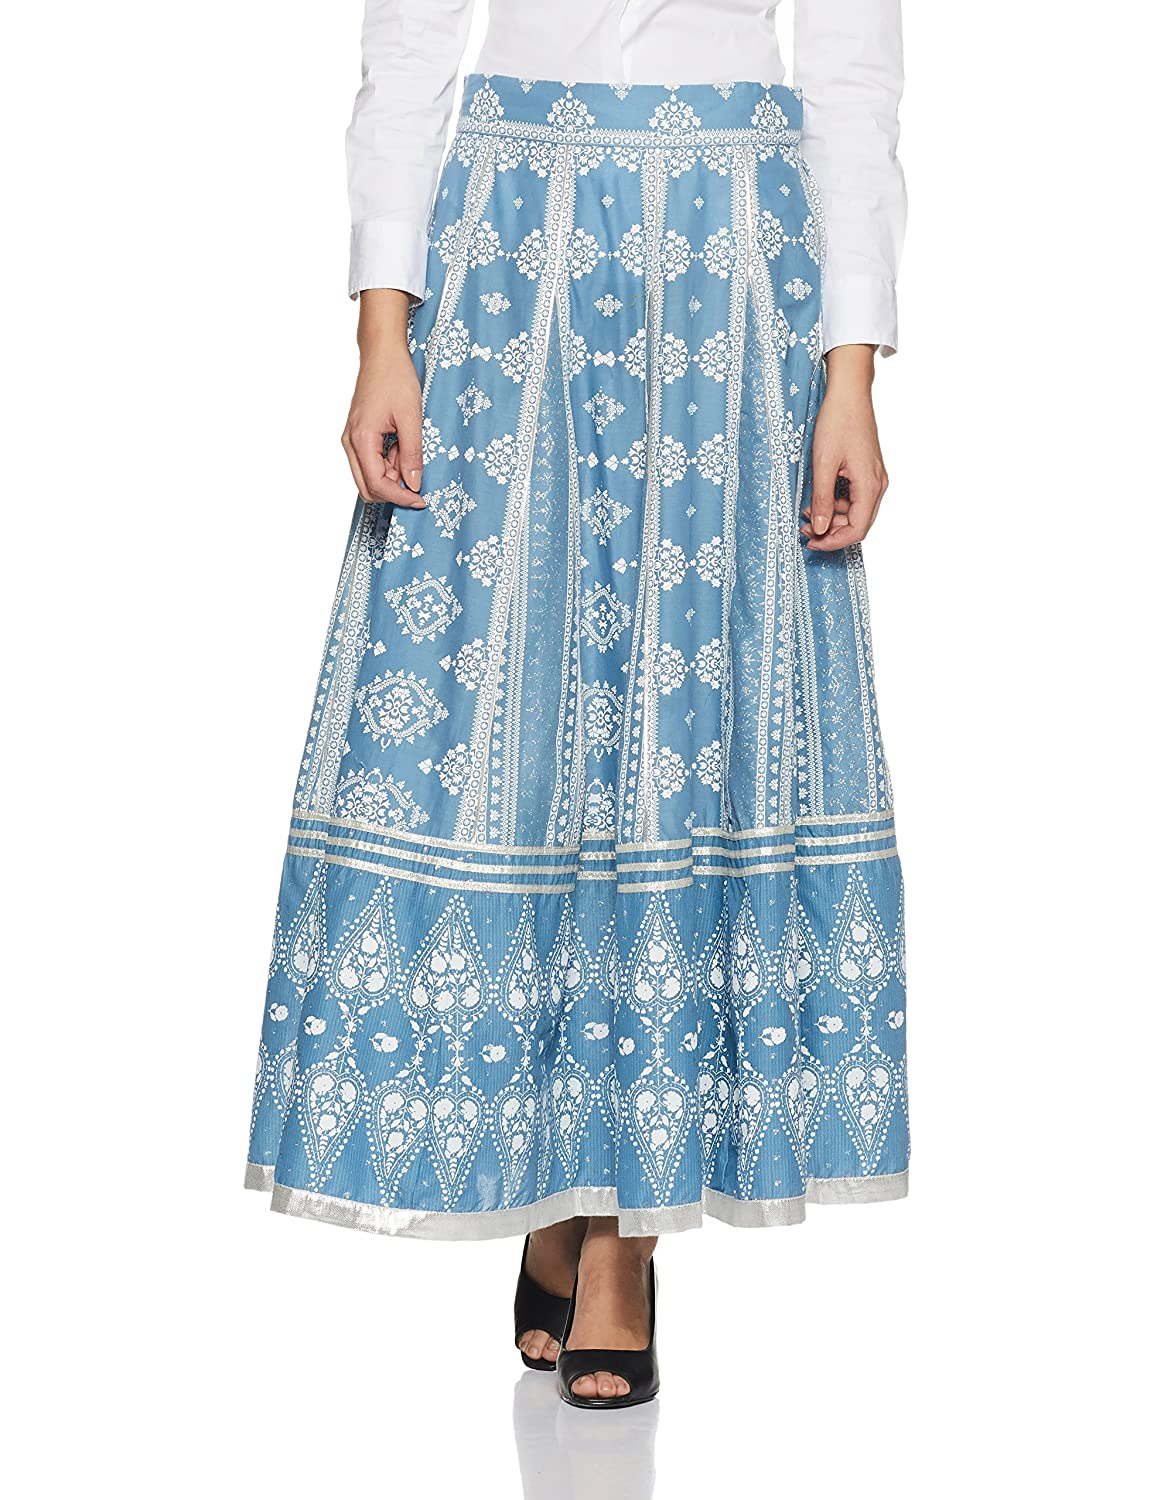 bluee W for Woman Women's Full Flared Skirt